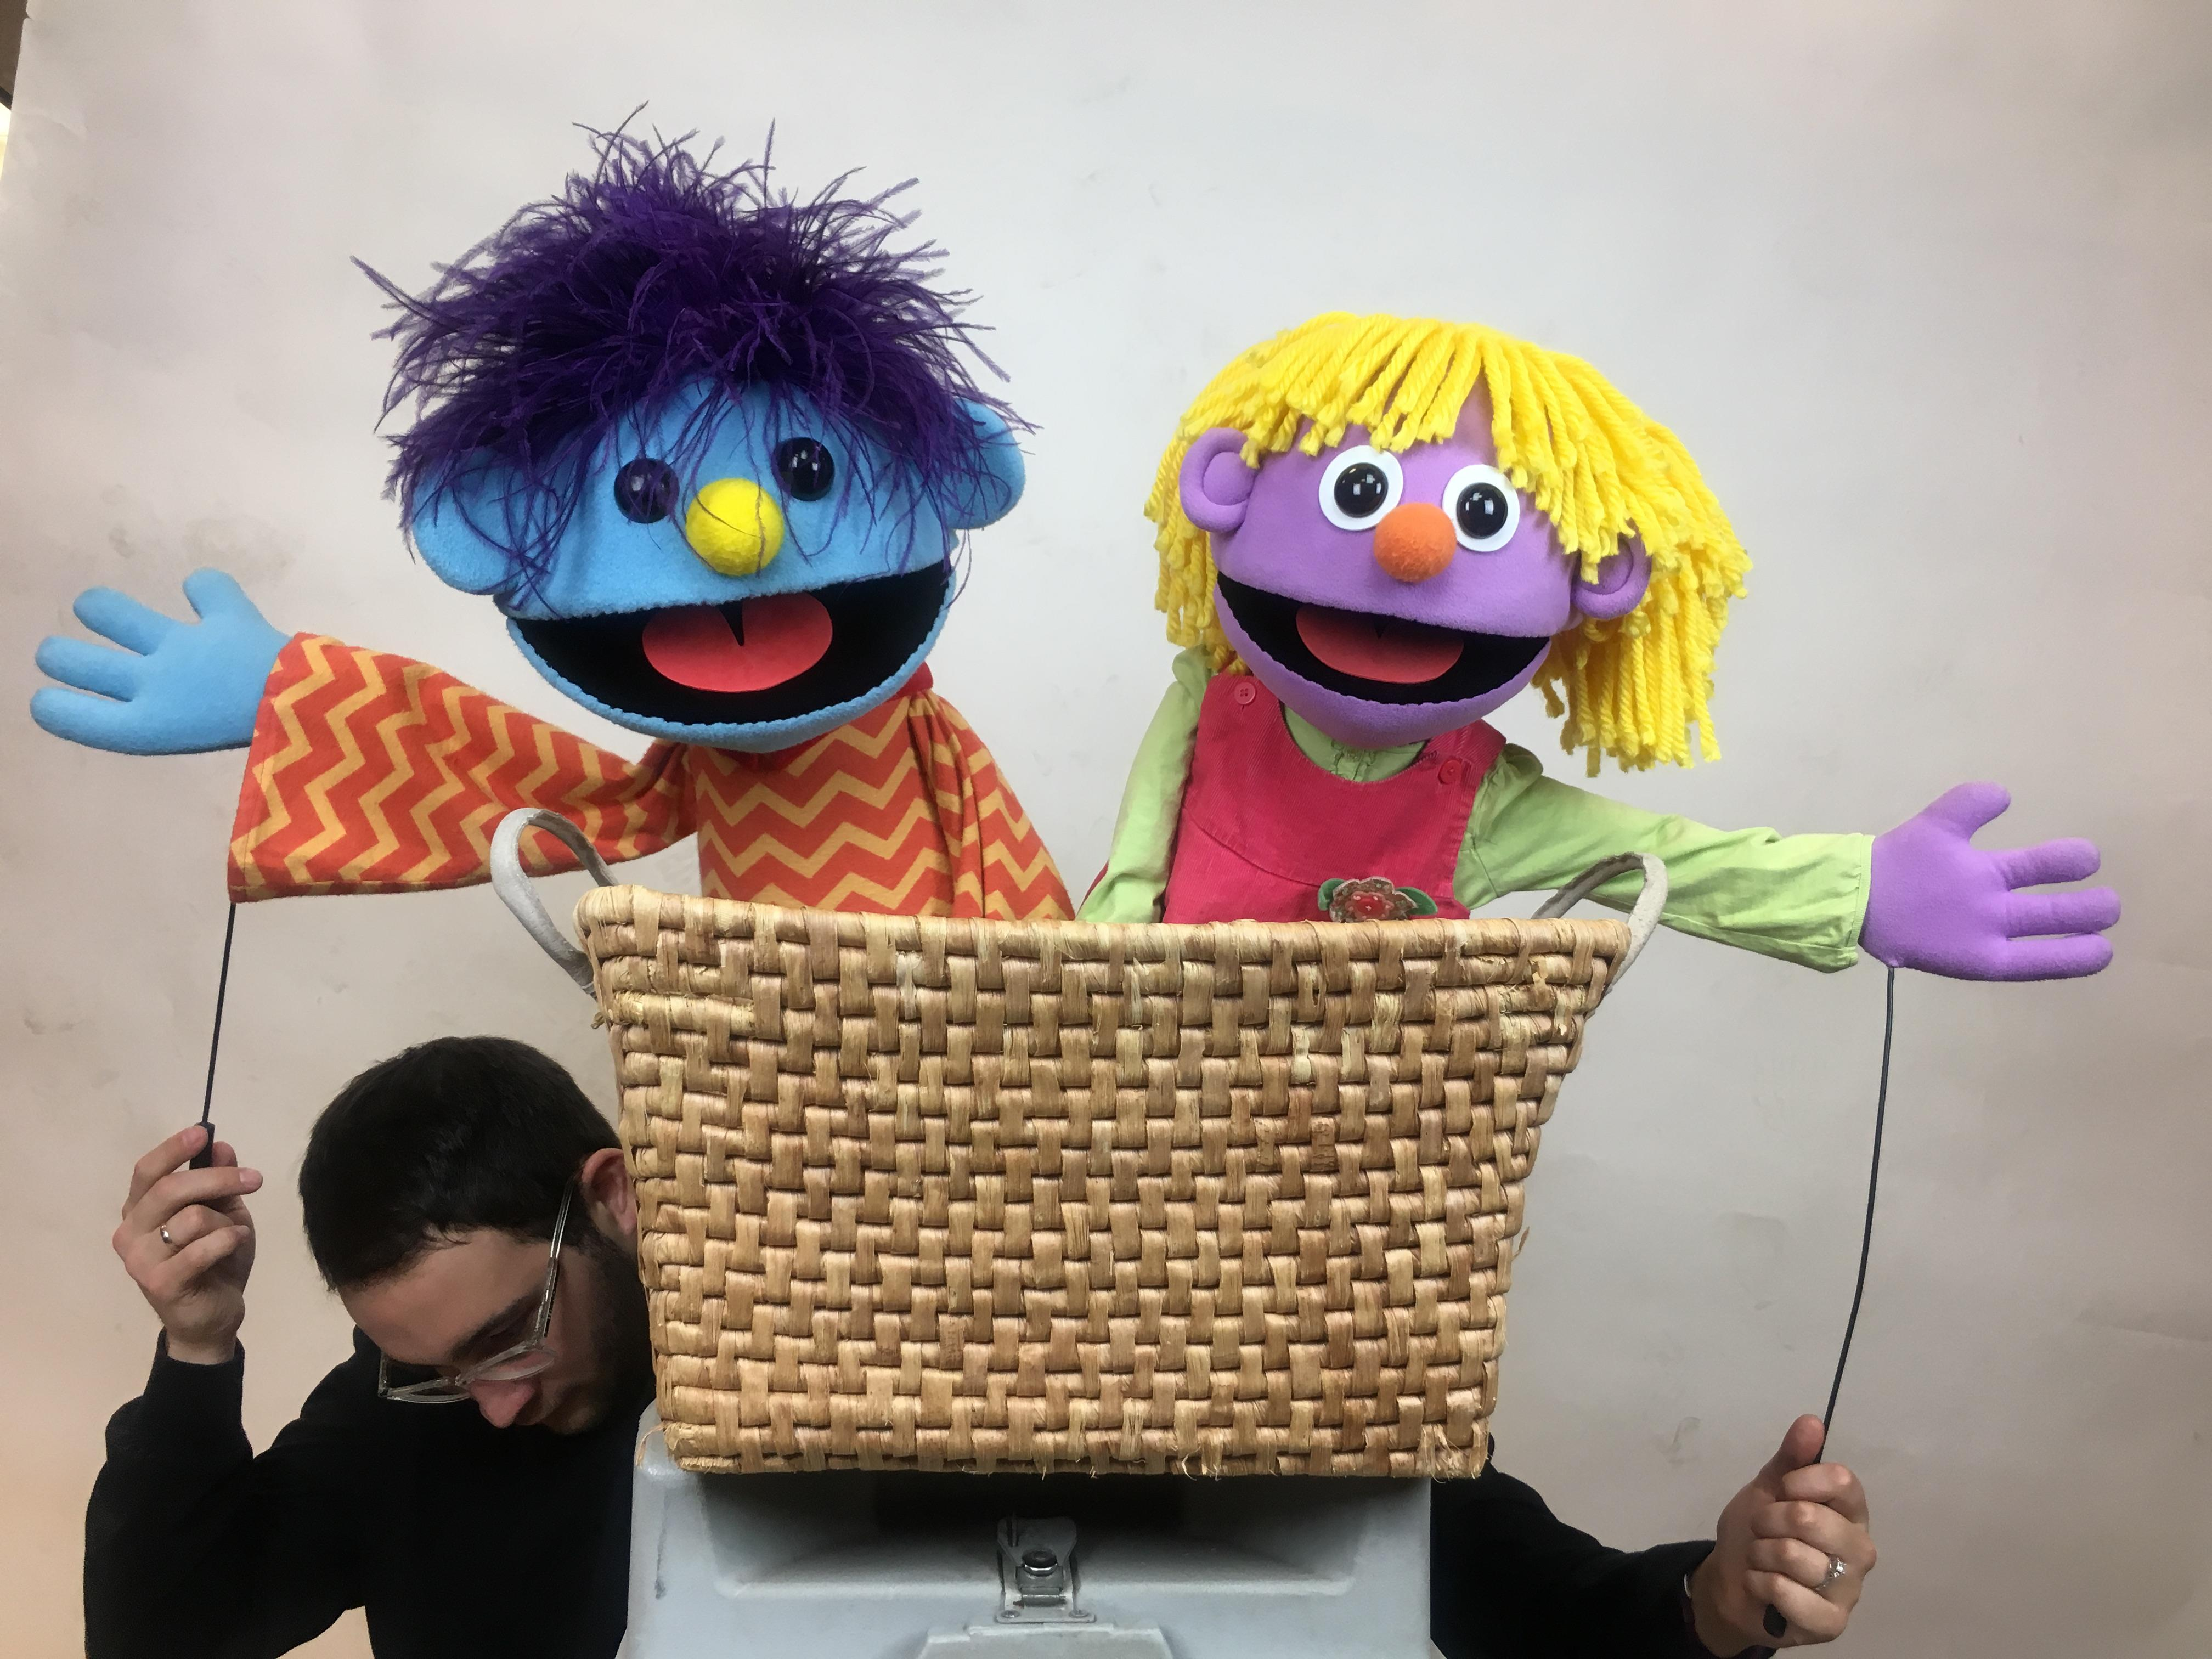 Two of the hundreds of puppets in the Madcap roster / Image courtesy of Madcap // Published: 1.26.19